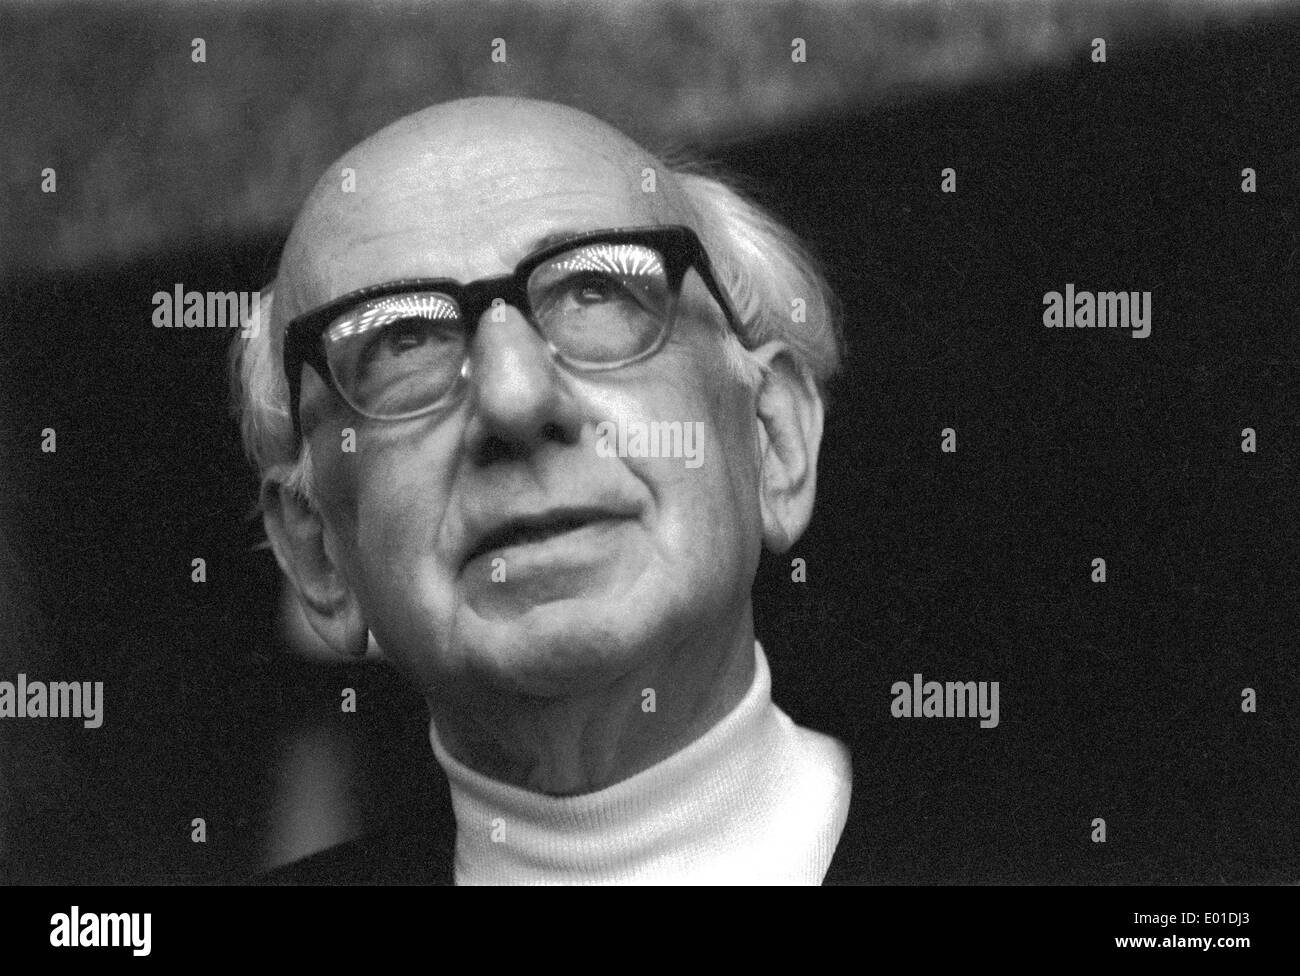 Personalities Portraits Europe 1970 1979 High Resolution Stock Photography And Images Alamy